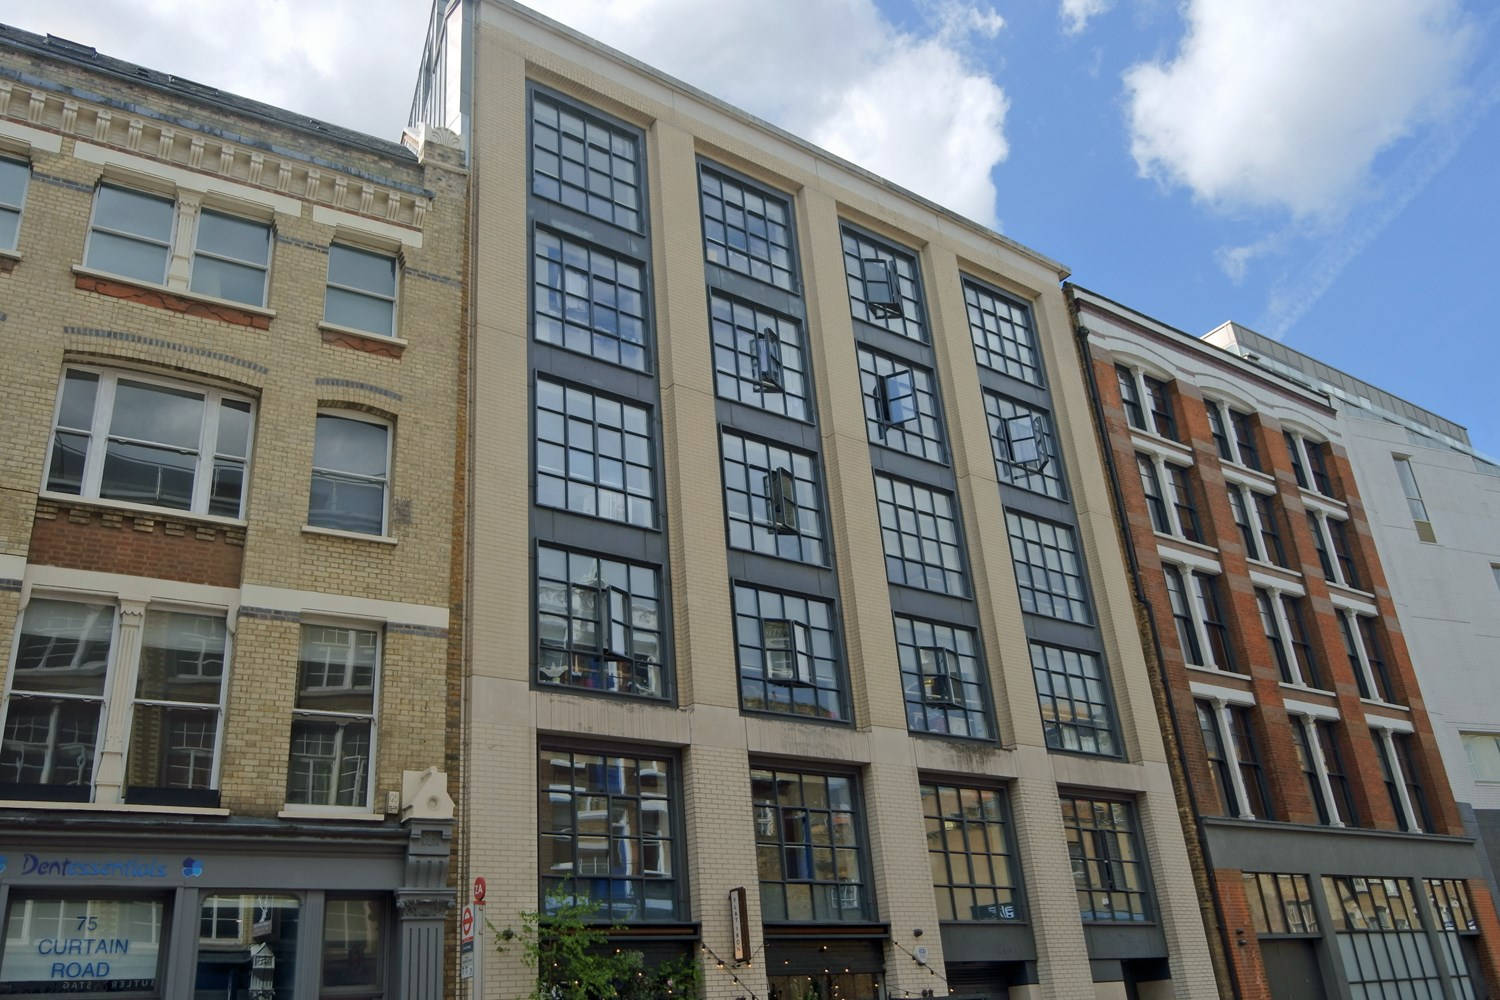 81 Curtain Road Shoreditch EC2A 3BS Office For Rent External2